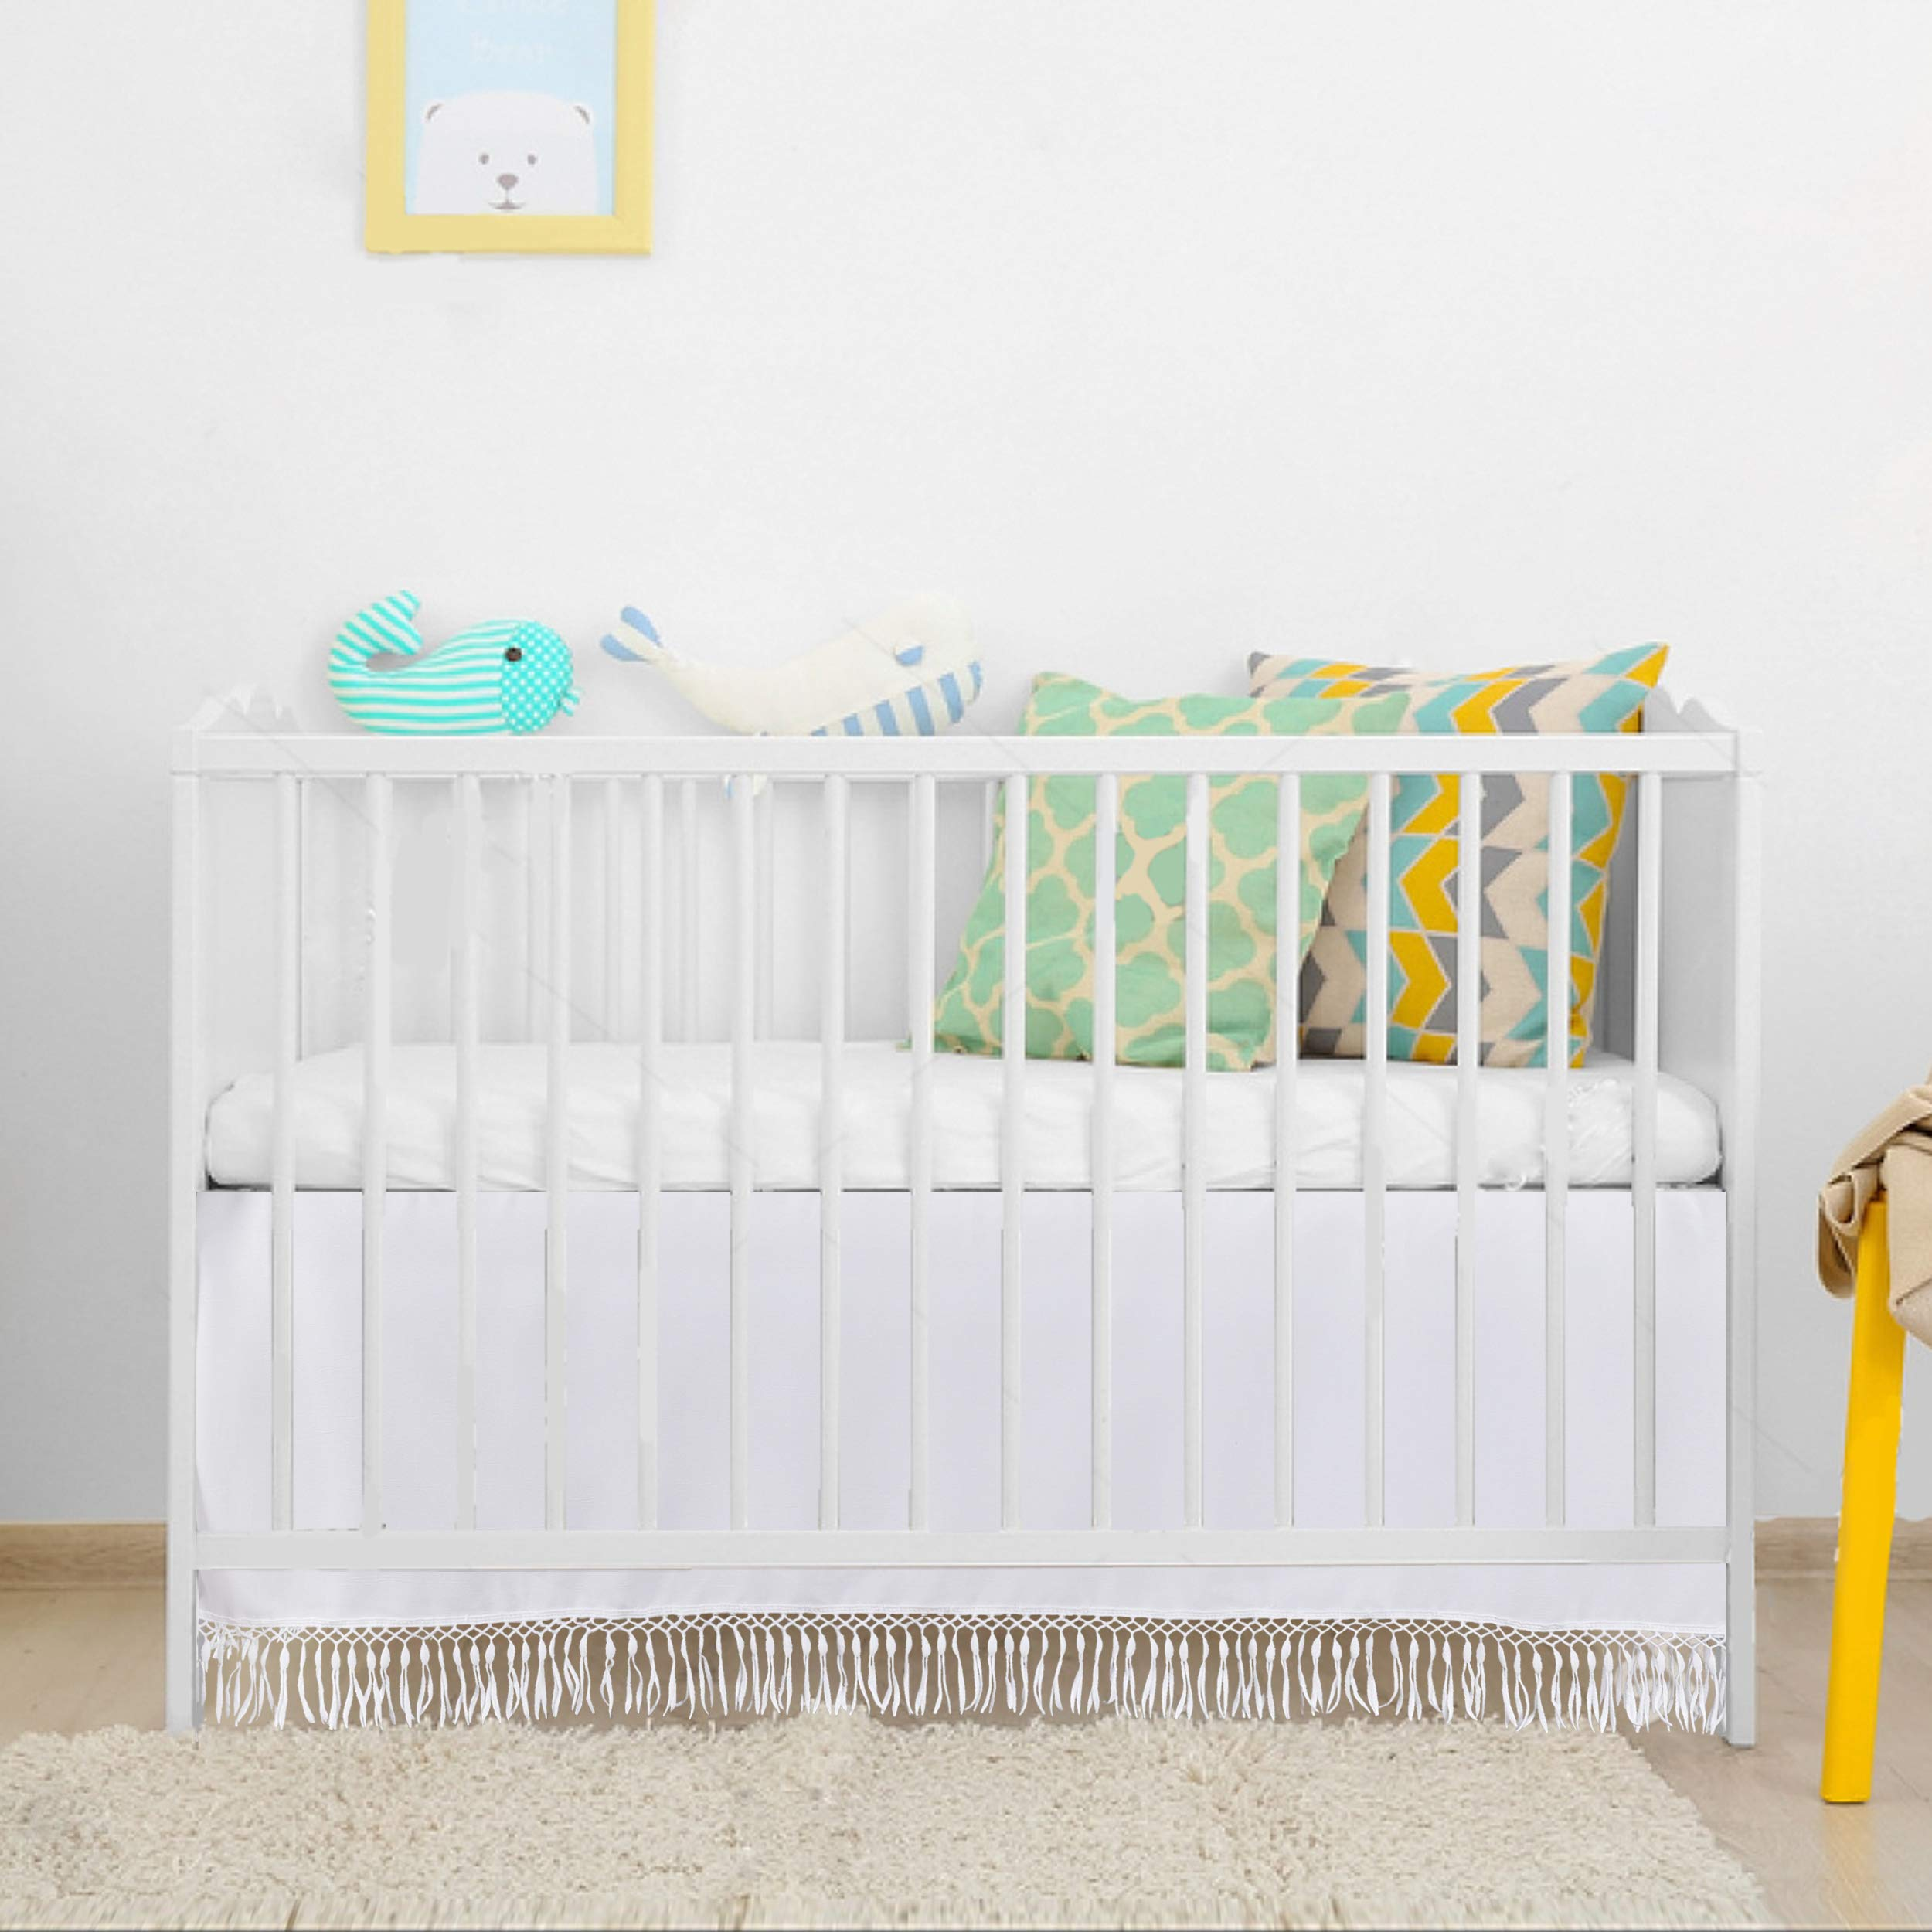 White Droplets Crib Skirt for Standard Crib Bed 52 by 28 by 15 Inches by HB HBB MAGIC